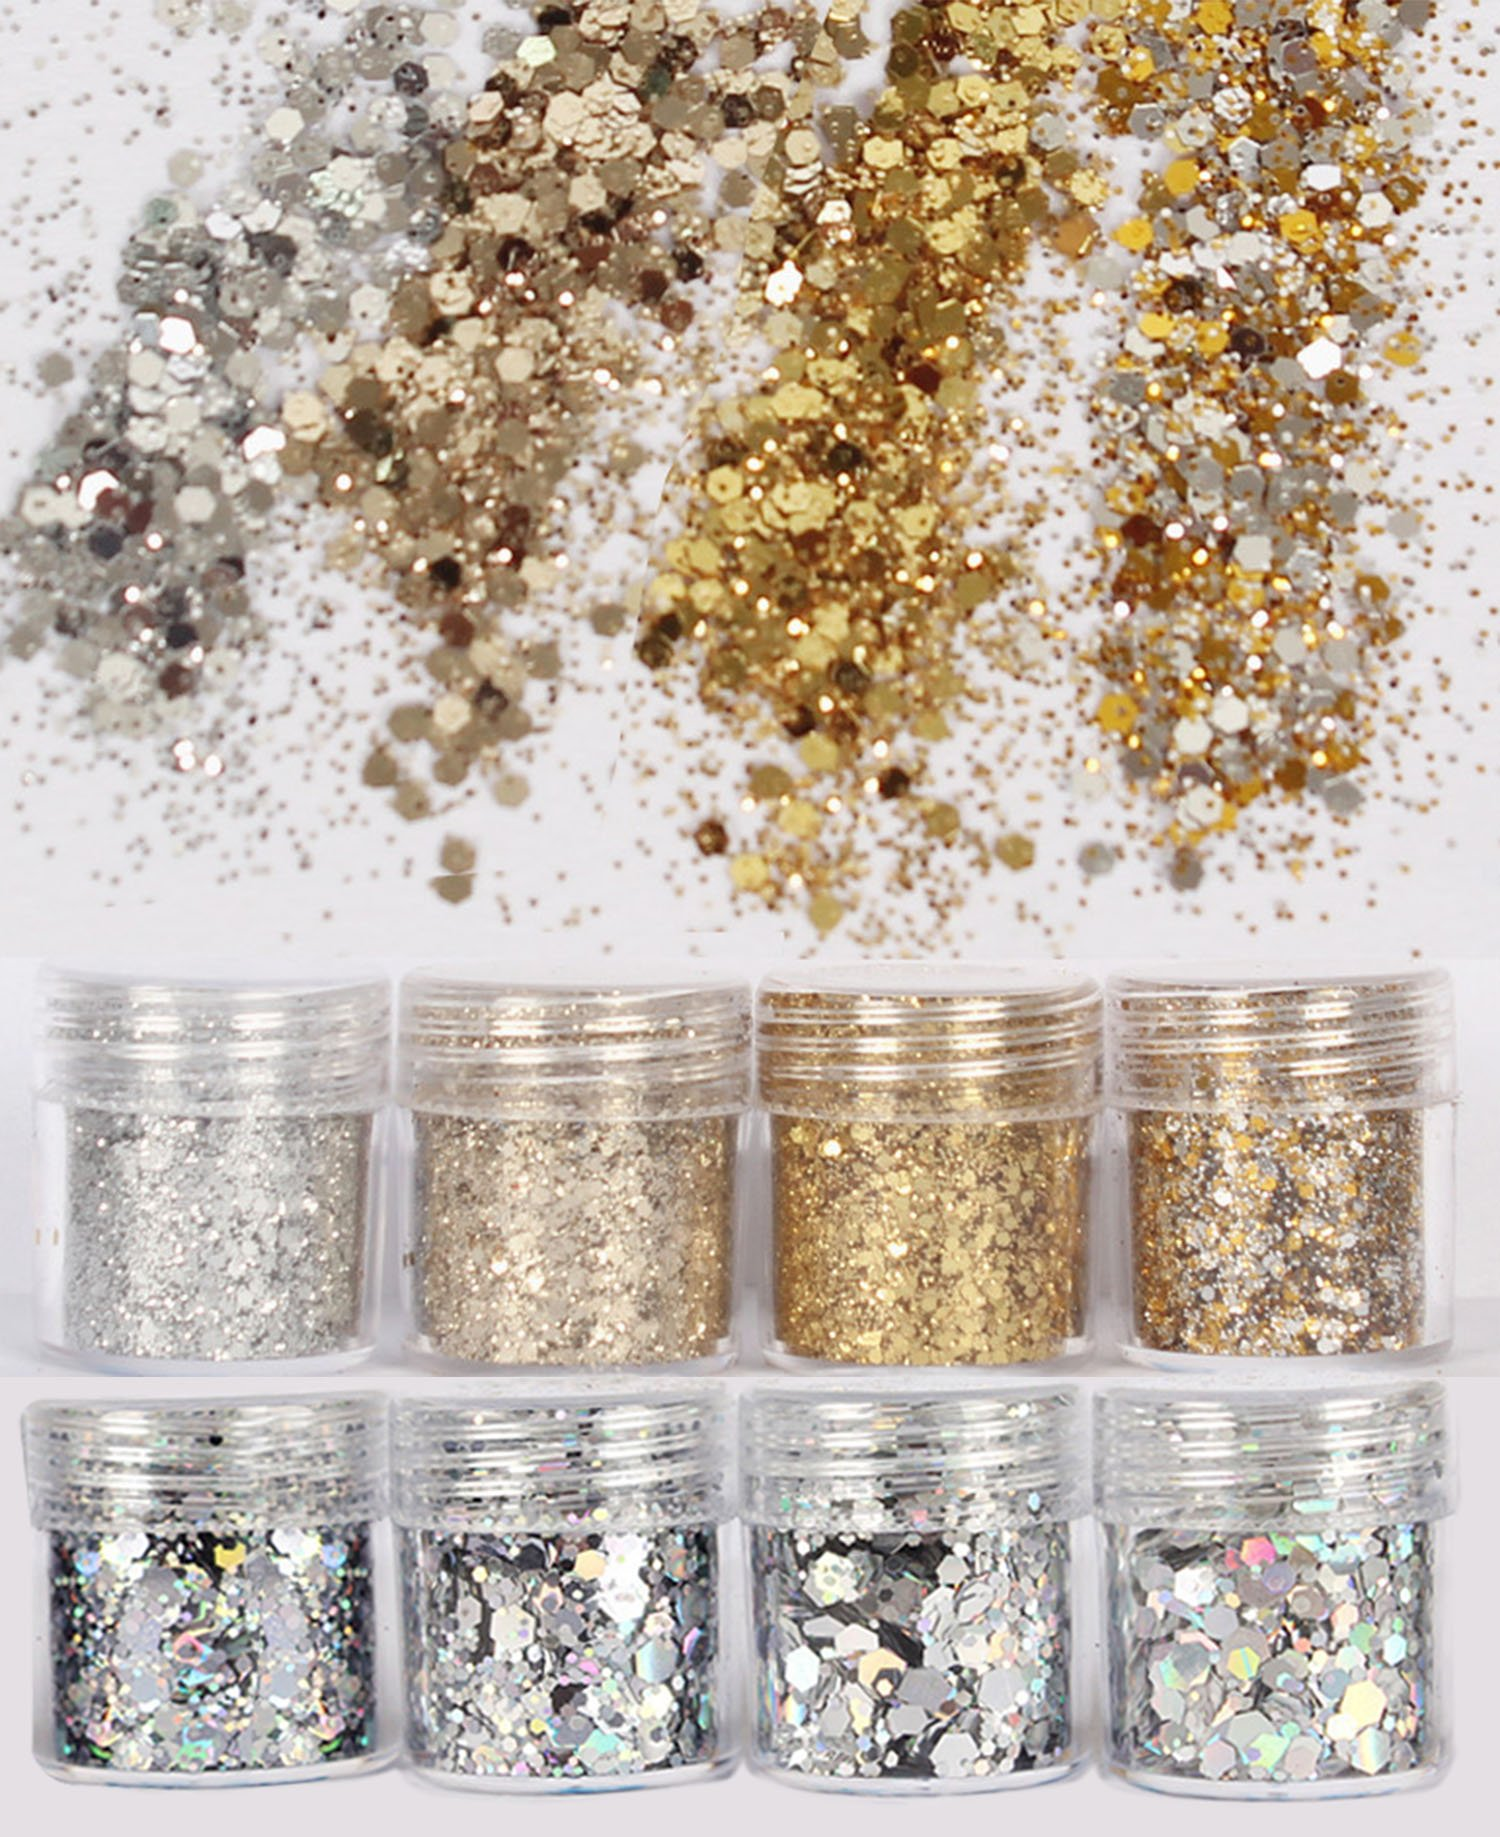 DaLin 8 Boxes Gold Silver Holographic Chunky Glitter Sequins Iridescent Flakes Ultra-thin Tips Colorful Mixed Paillette Festival Beauty Makeup Face Body Hair Nails Cosmetic Glitter (Color 4)